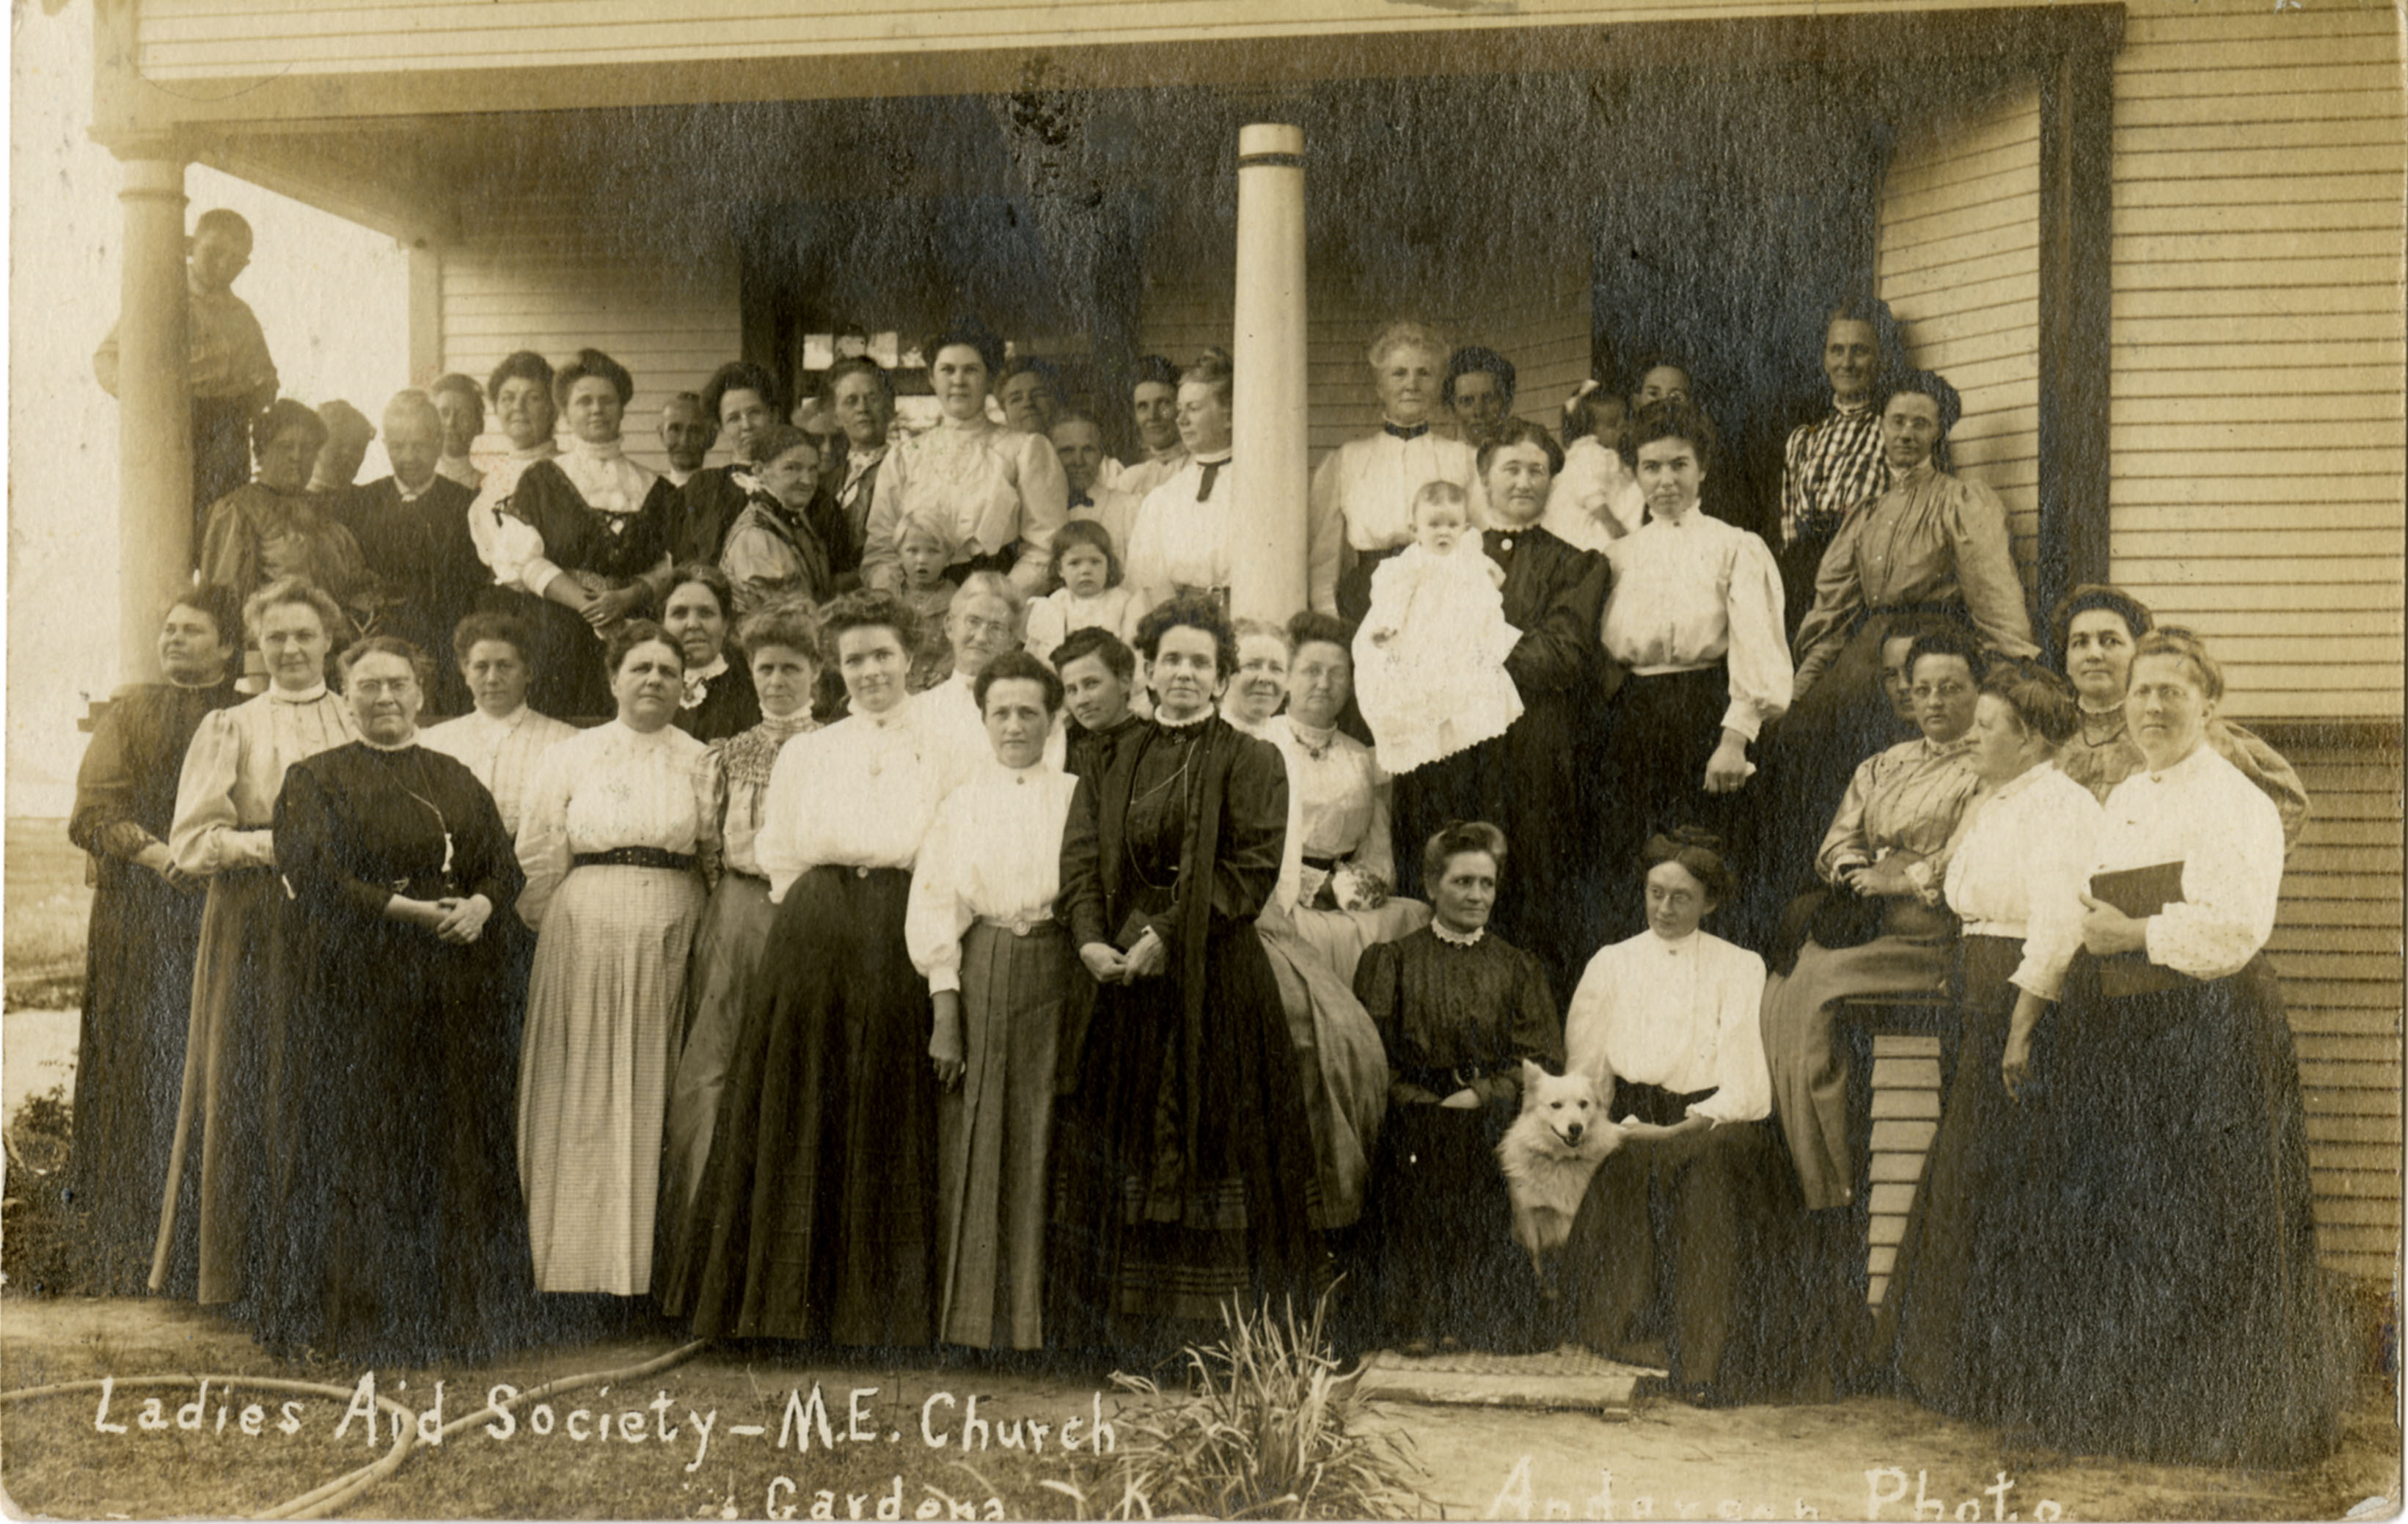 Ladies gather on steps in front of church